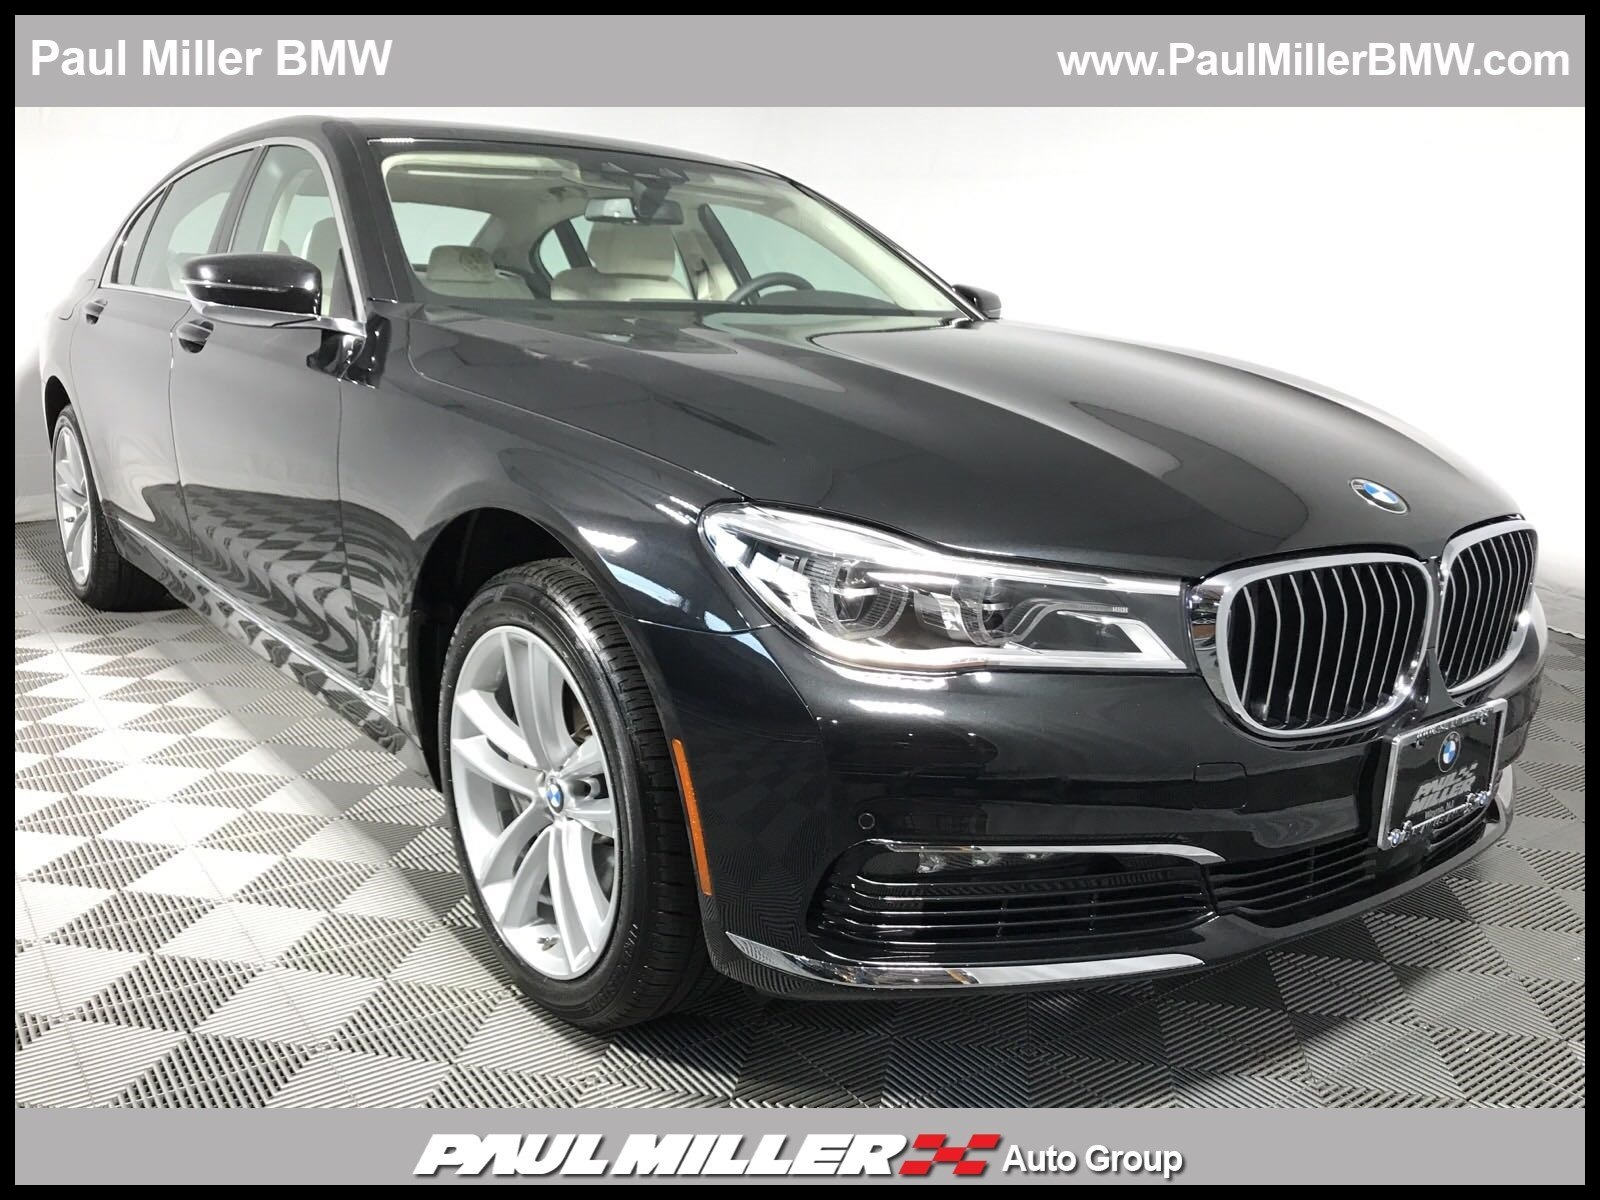 Bmw Cpo Warranty Review Certified Pre Owned 2018 Bmw 7 Series 4dr Car In Wayne L